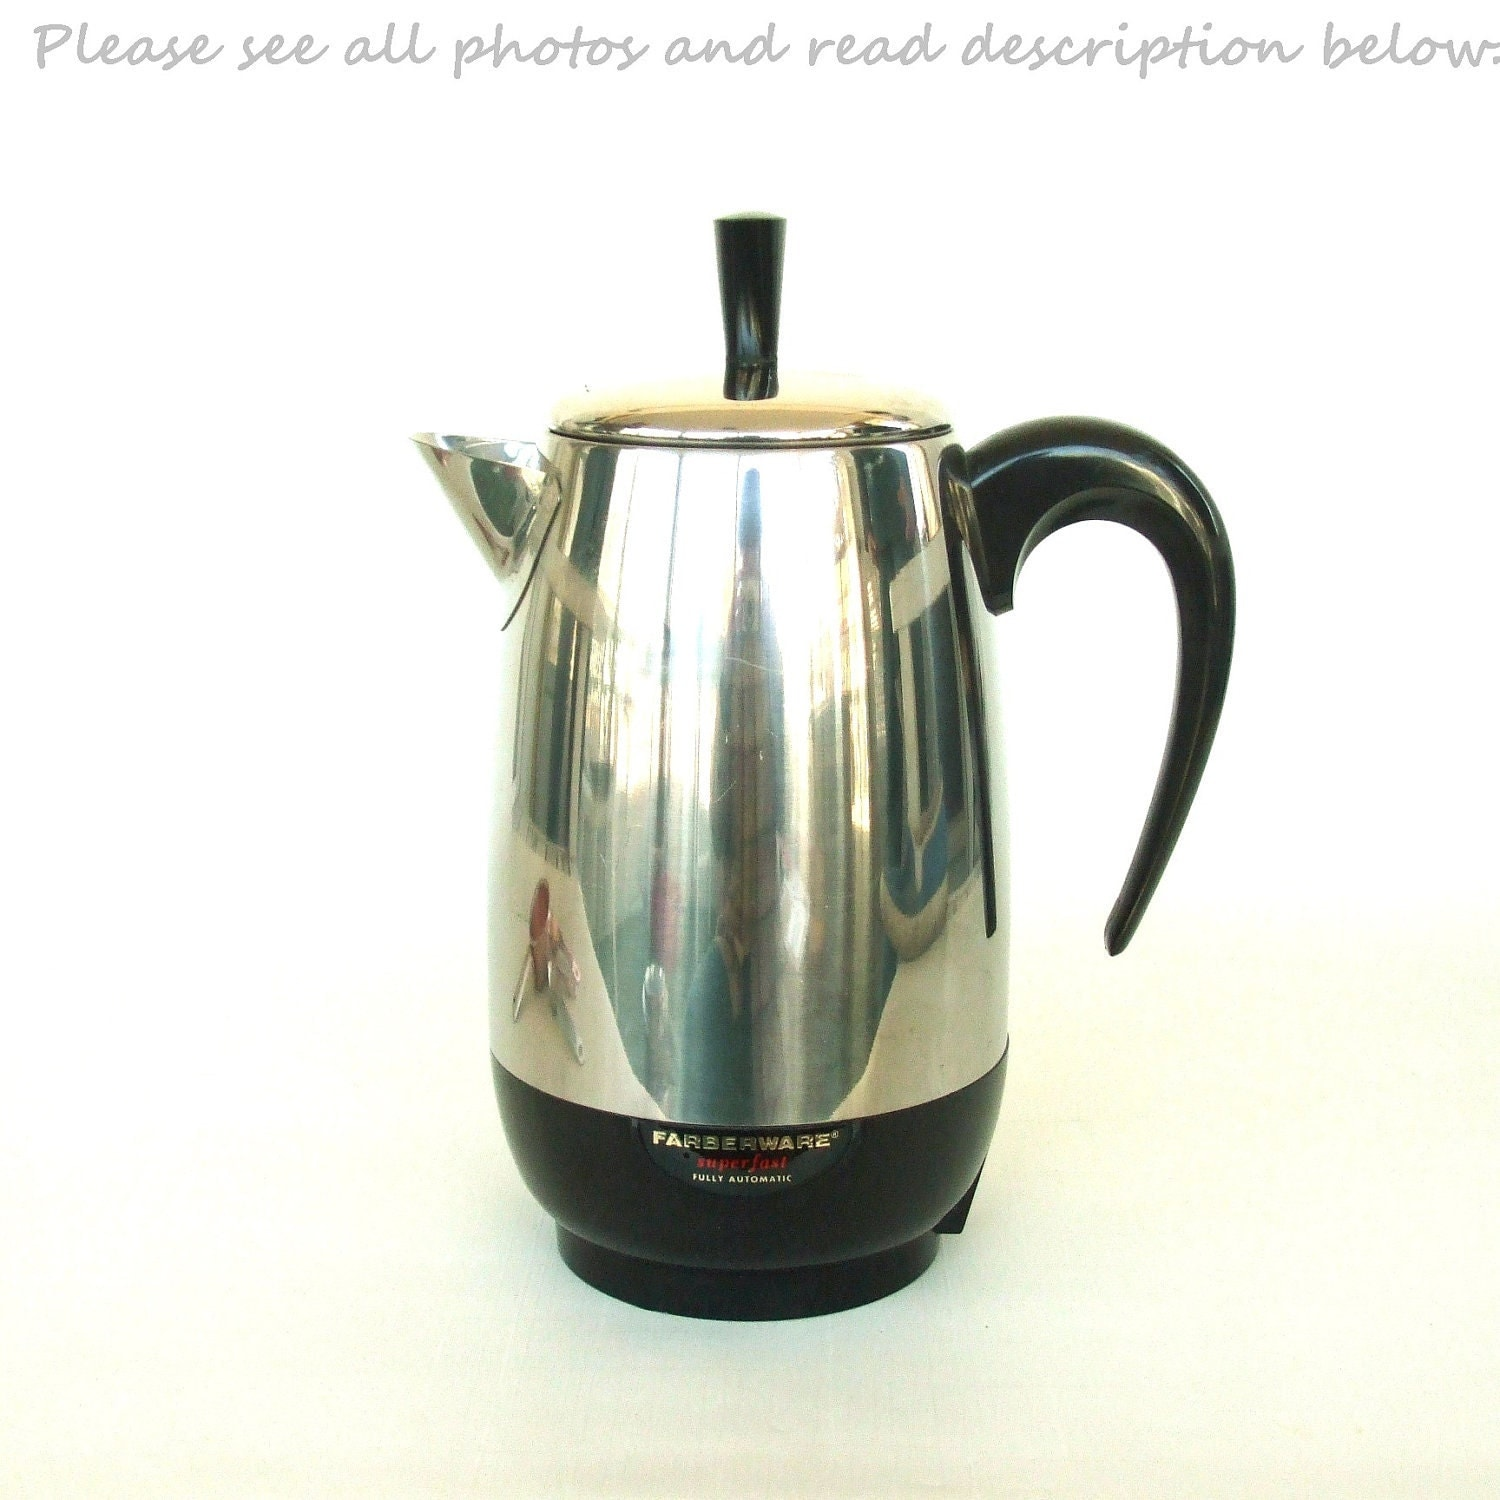 Farberware Superfast Electric Coffee Percolator by LaurasLastDitch